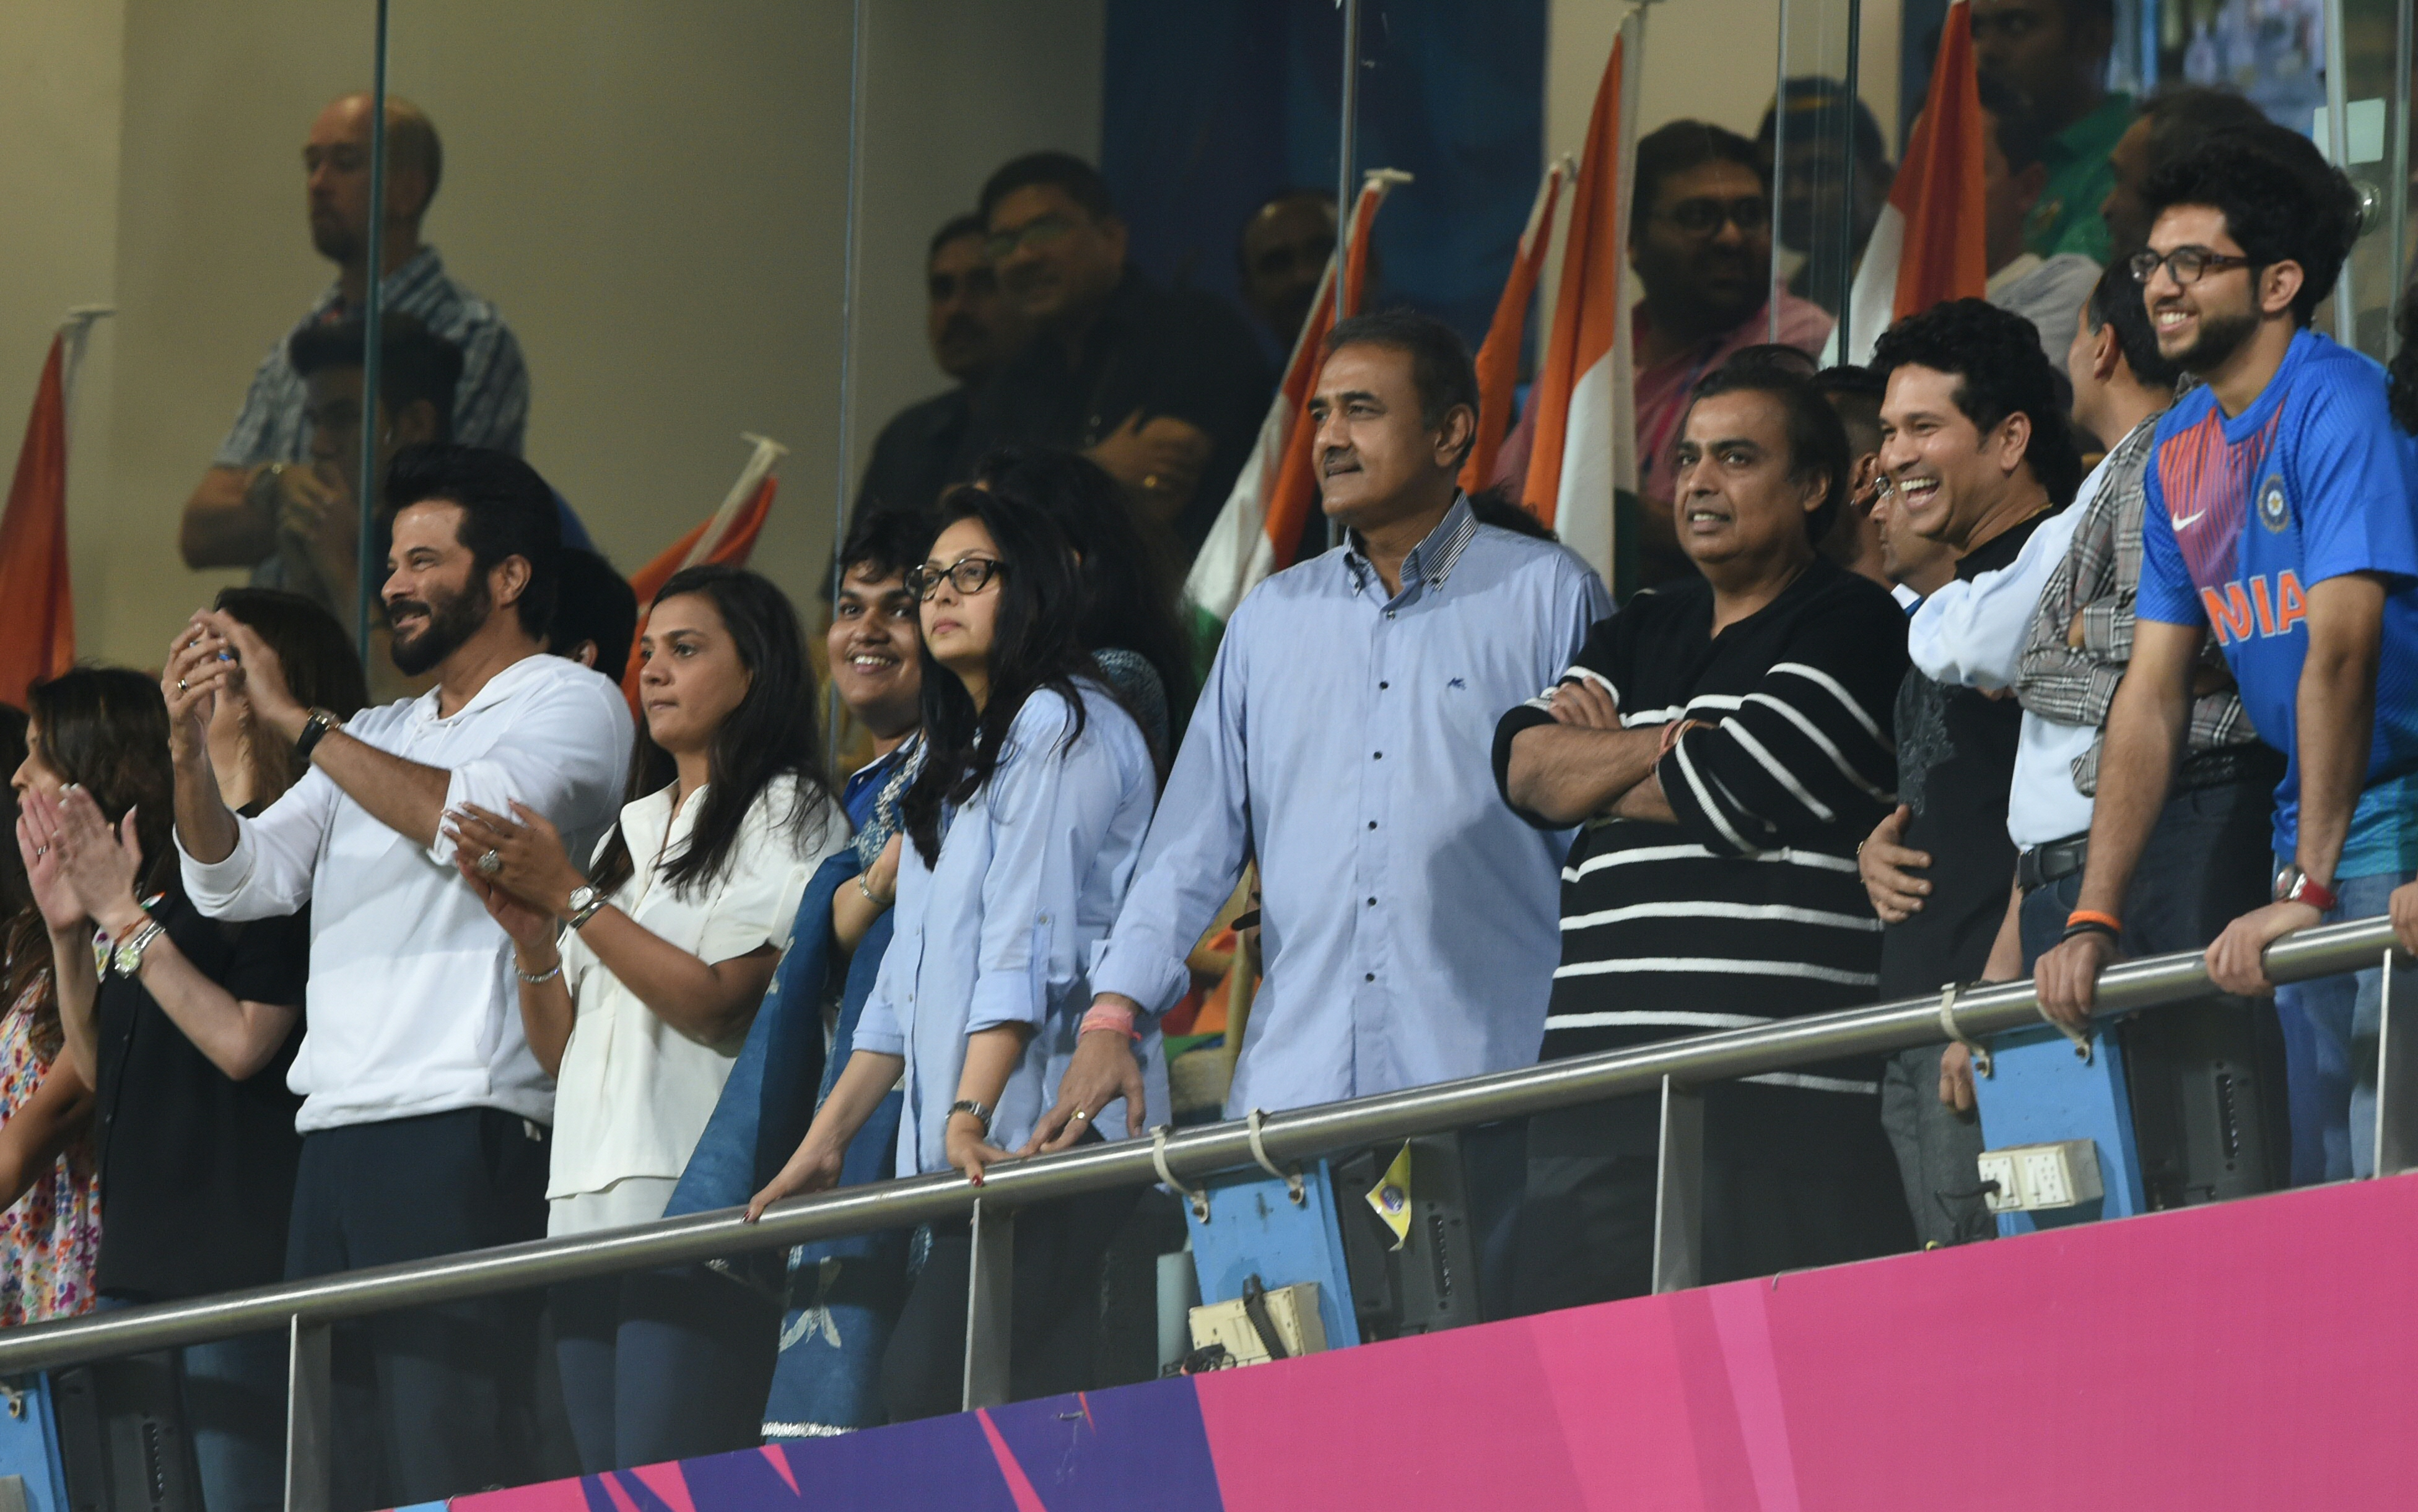 Indian Bollywood actor Anil Kapoor(L)industrialist Mukesh Ambani(3R),Sachin Tendulkar politician Praful Patil(4L)and Nita Ambani(3L)applaud after India's Virat Kohli scored his half century during the World T20 men's semi-final match between India and West Indies at The Wankhede Cricket Stadium in Mumbai on March 31, 2016. / AFP / INDRANIL MUKHERJEE